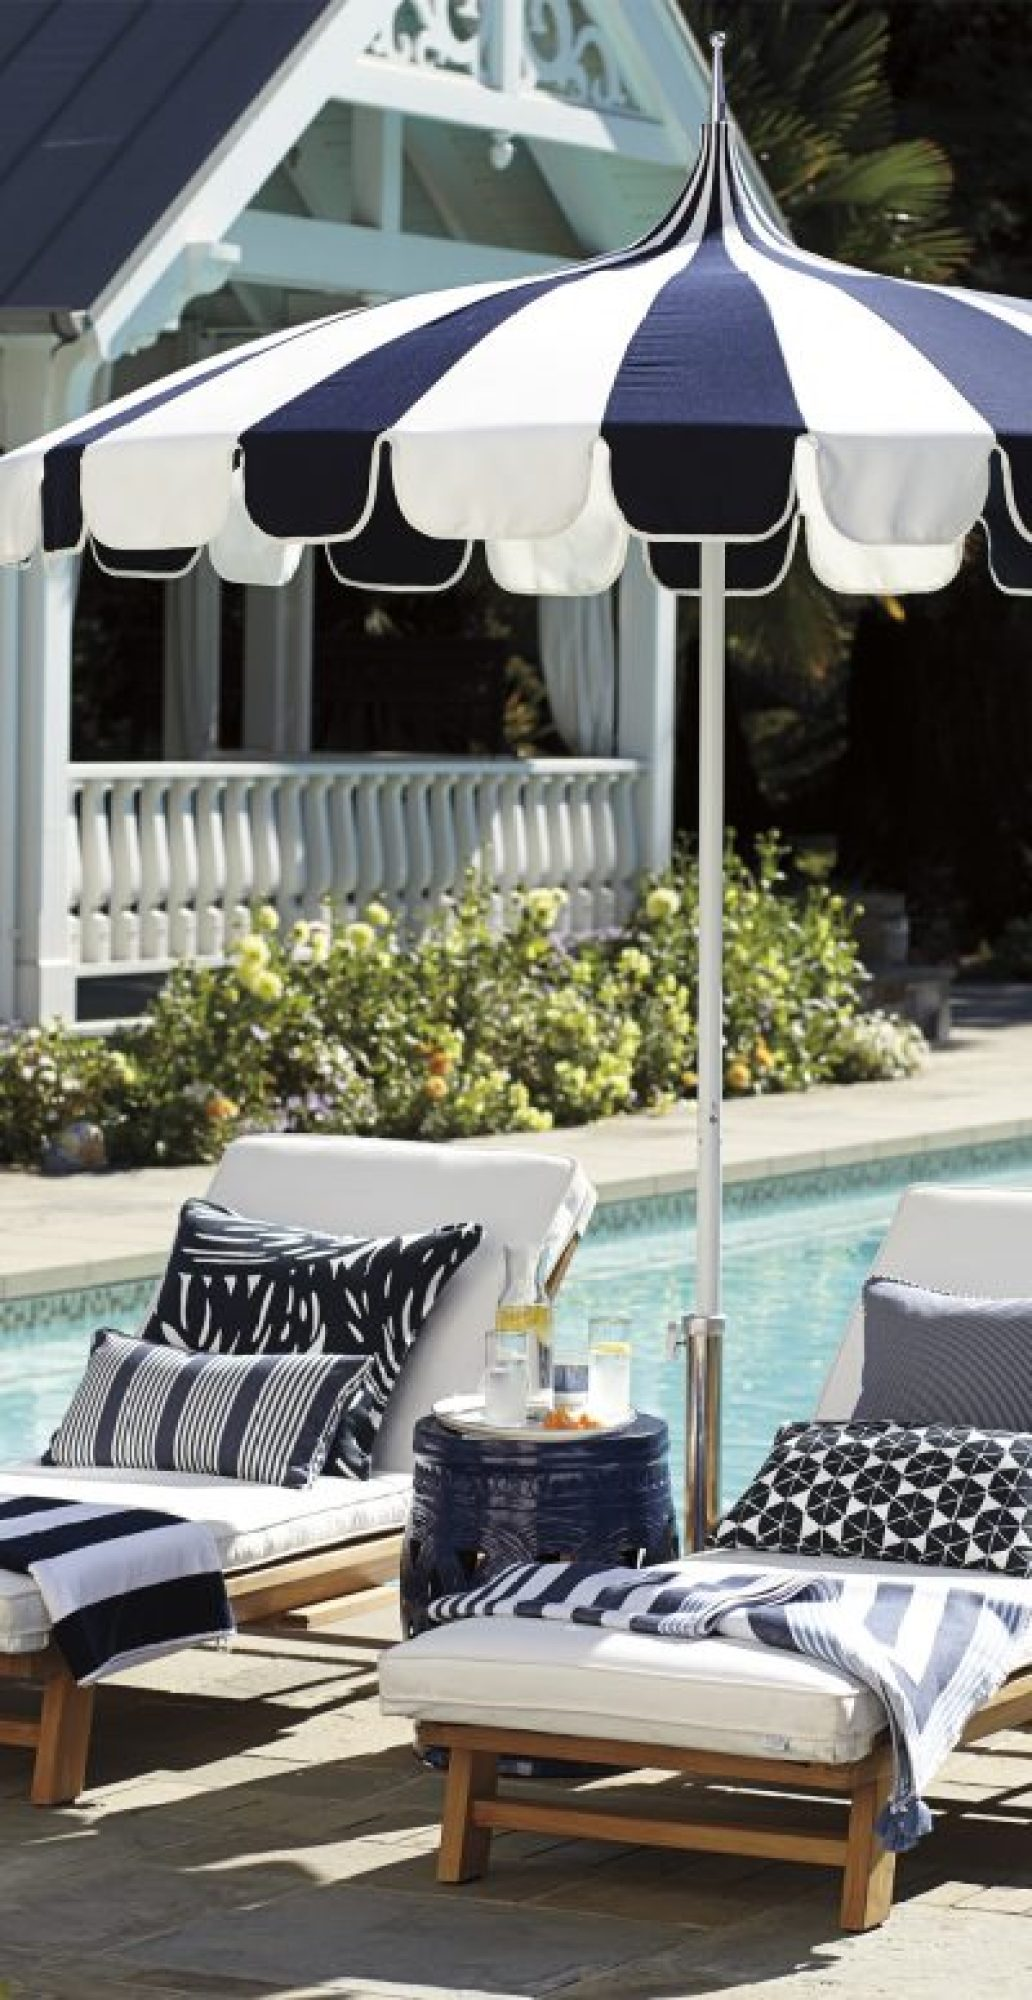 Outdoor Ideas 33 Pool Lounge Chair Ideas